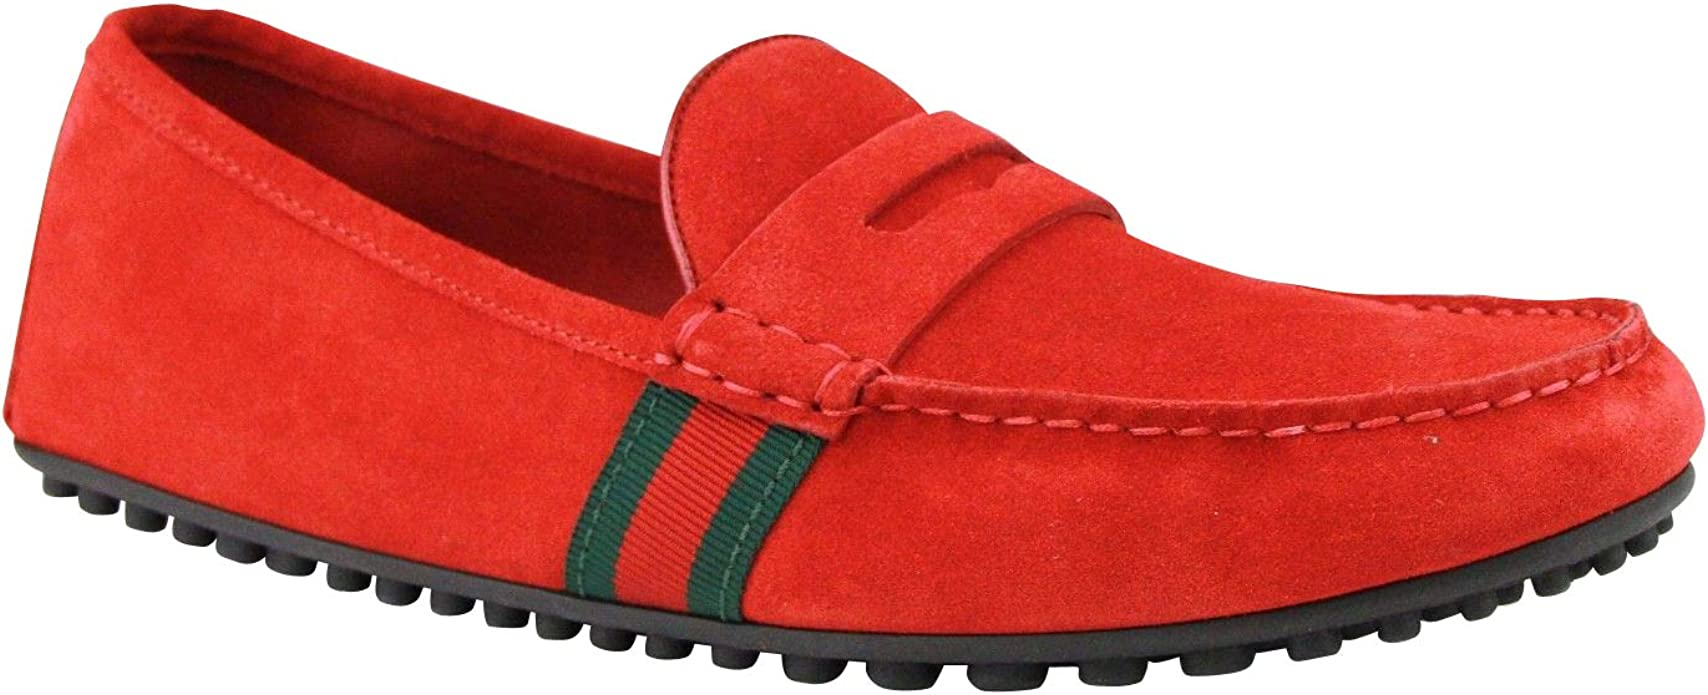 Gucci Men's Driver Loafer Red Suede